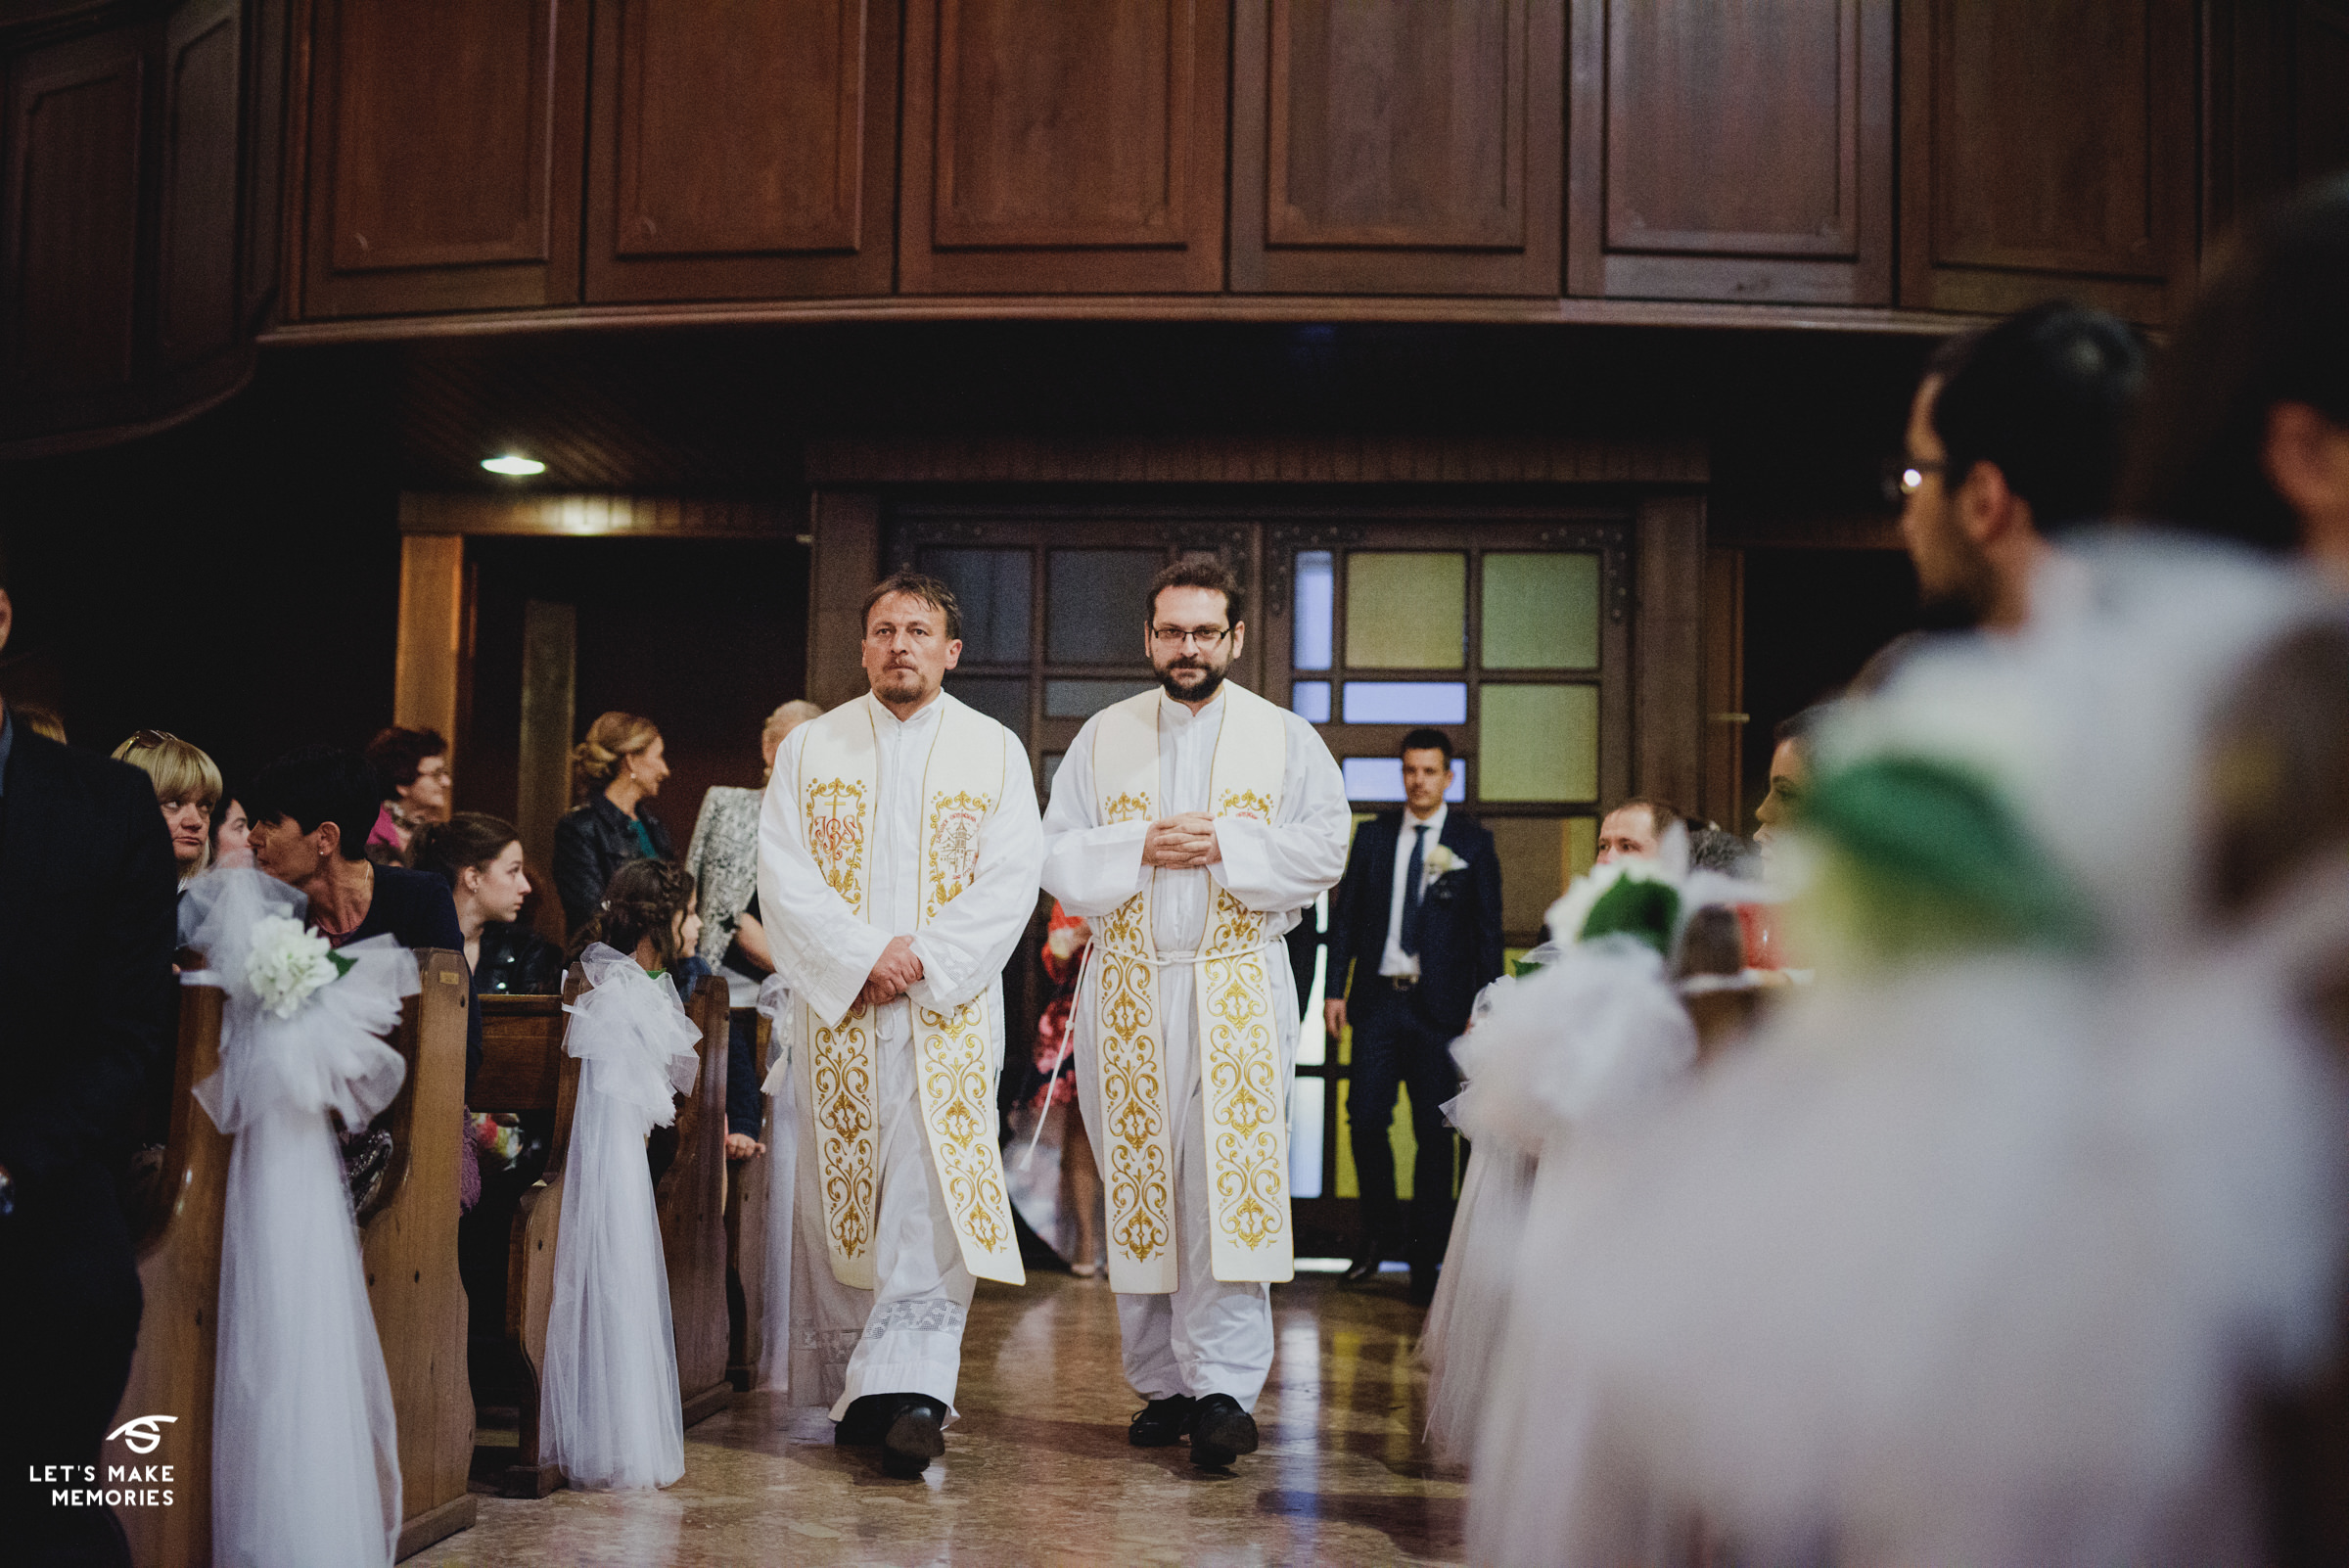 priests walking down the aisle